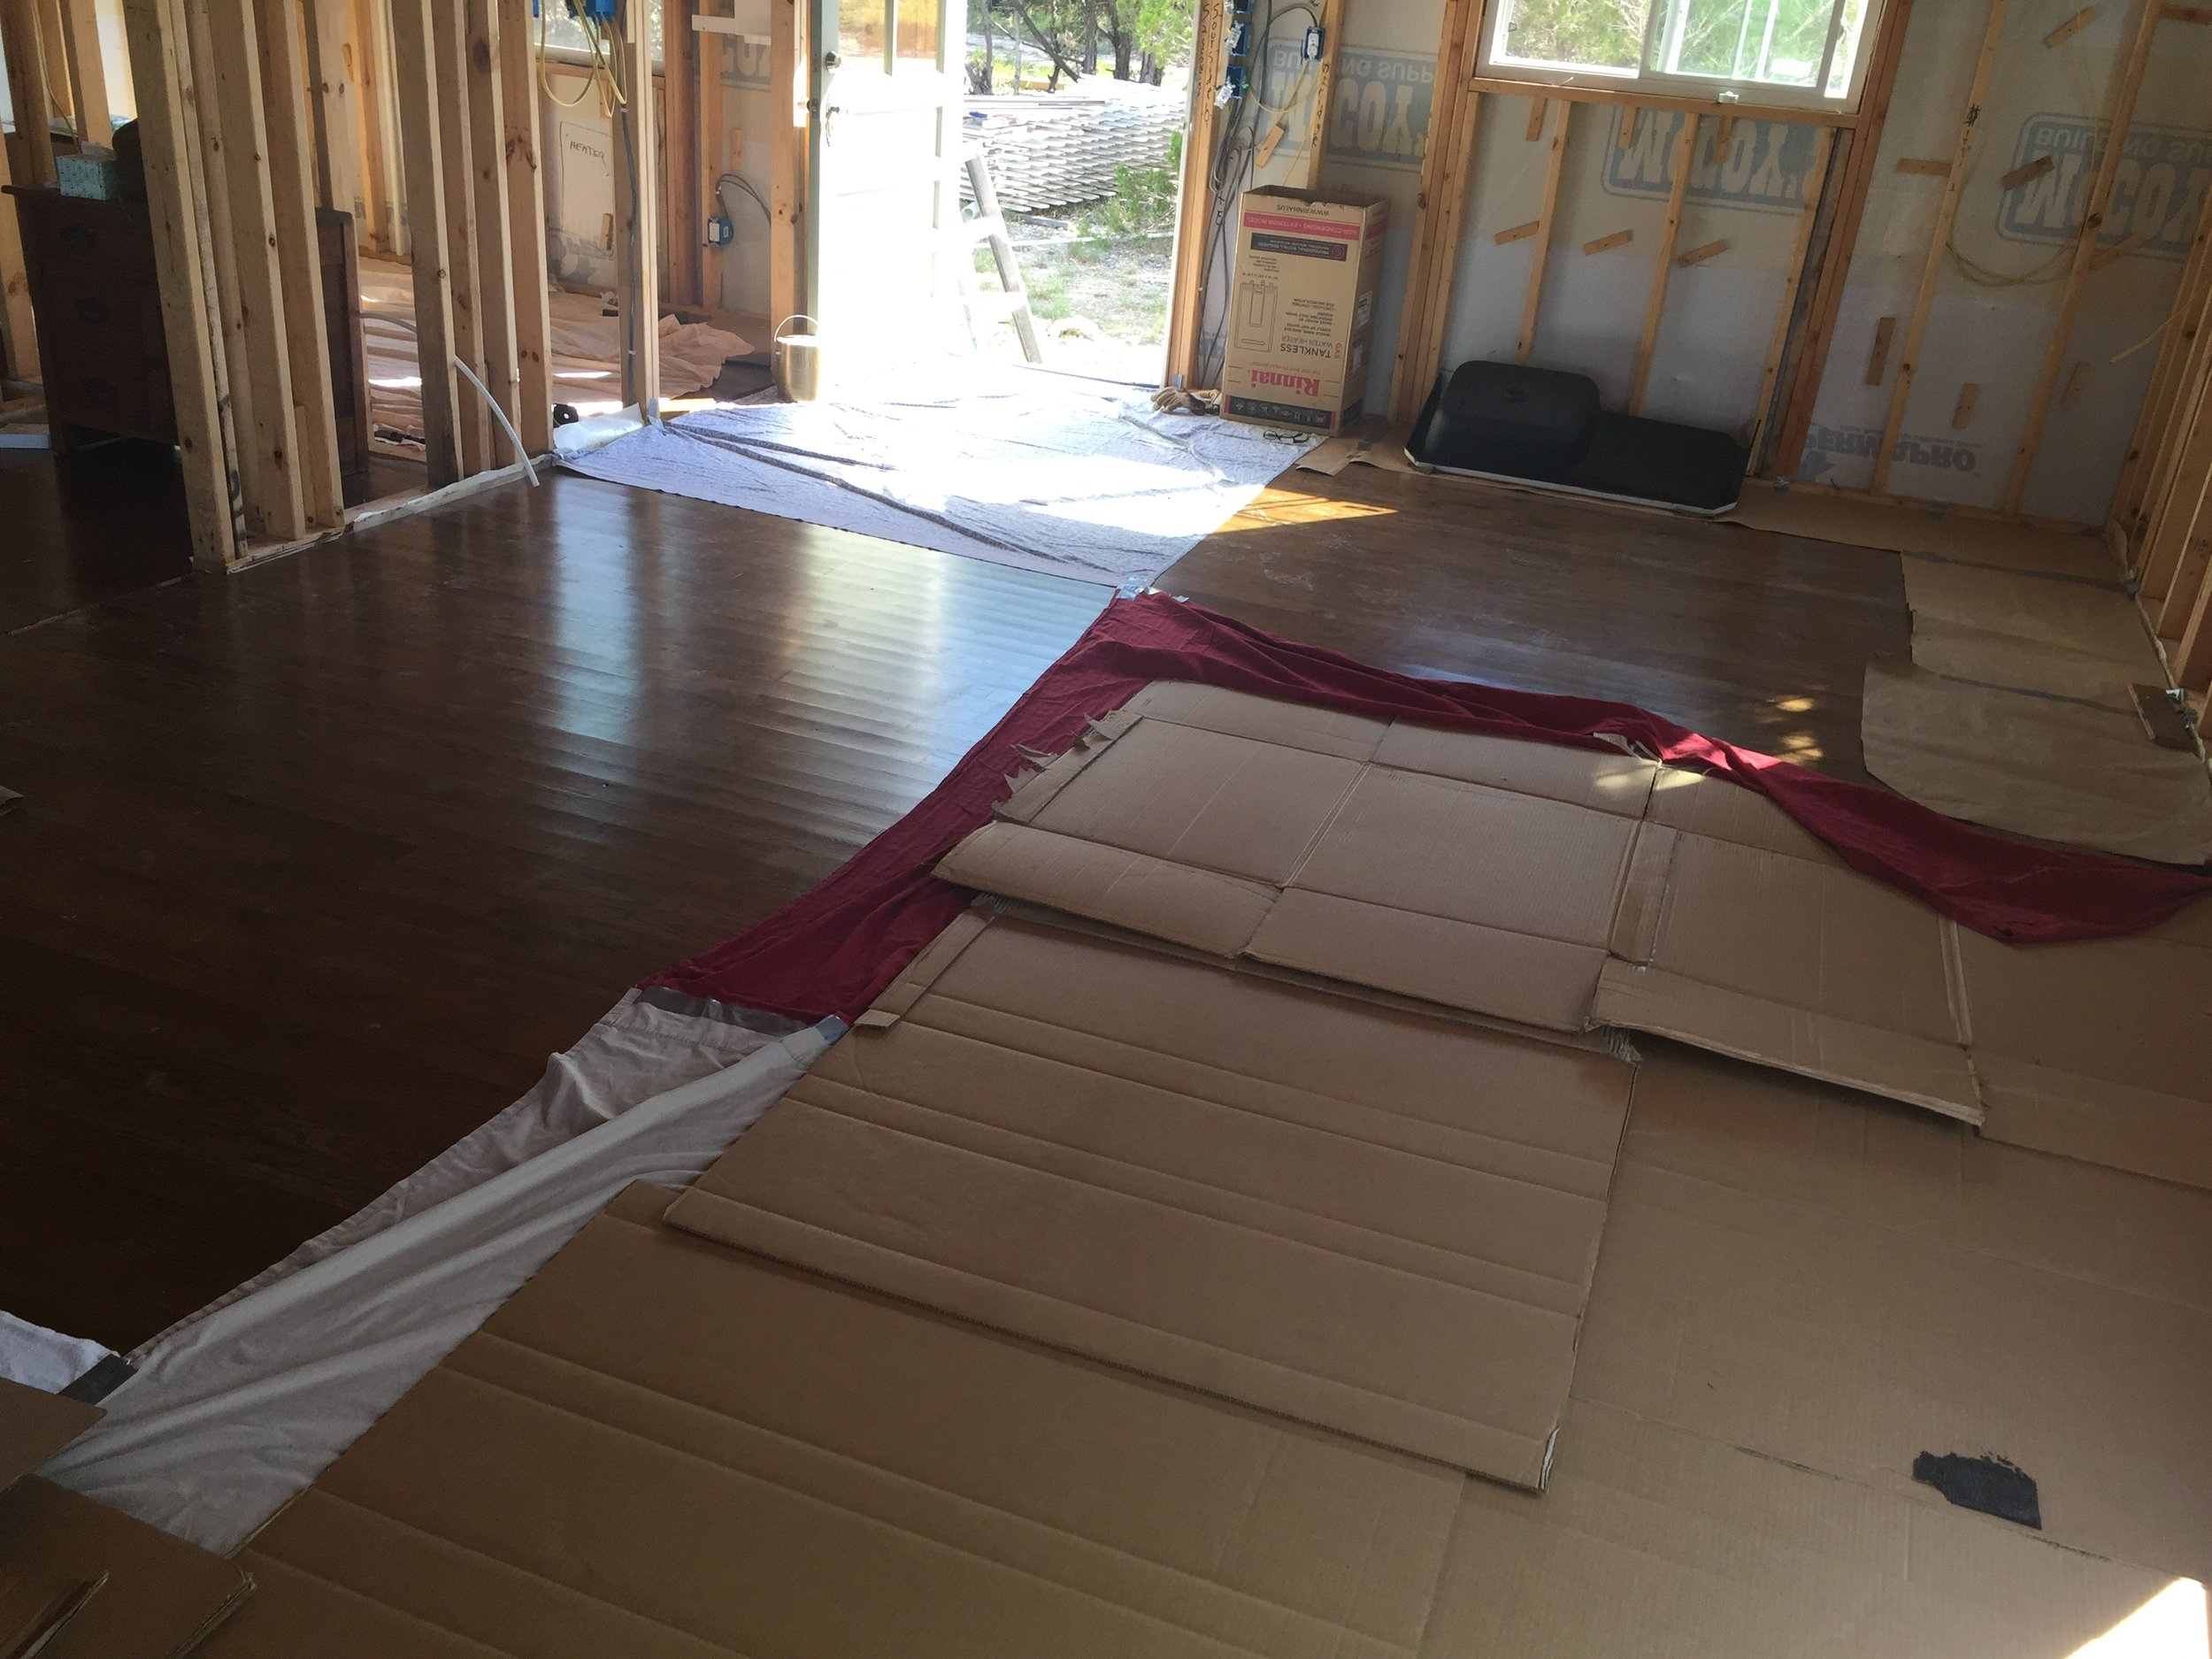 We covered the hardwood flooring with sheets and cardboard